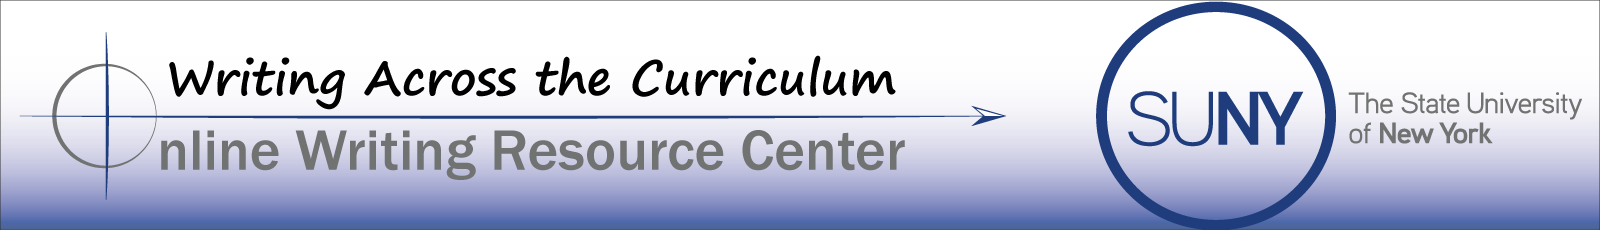 Online Writing Resource Center: Writing Across the Curriculum